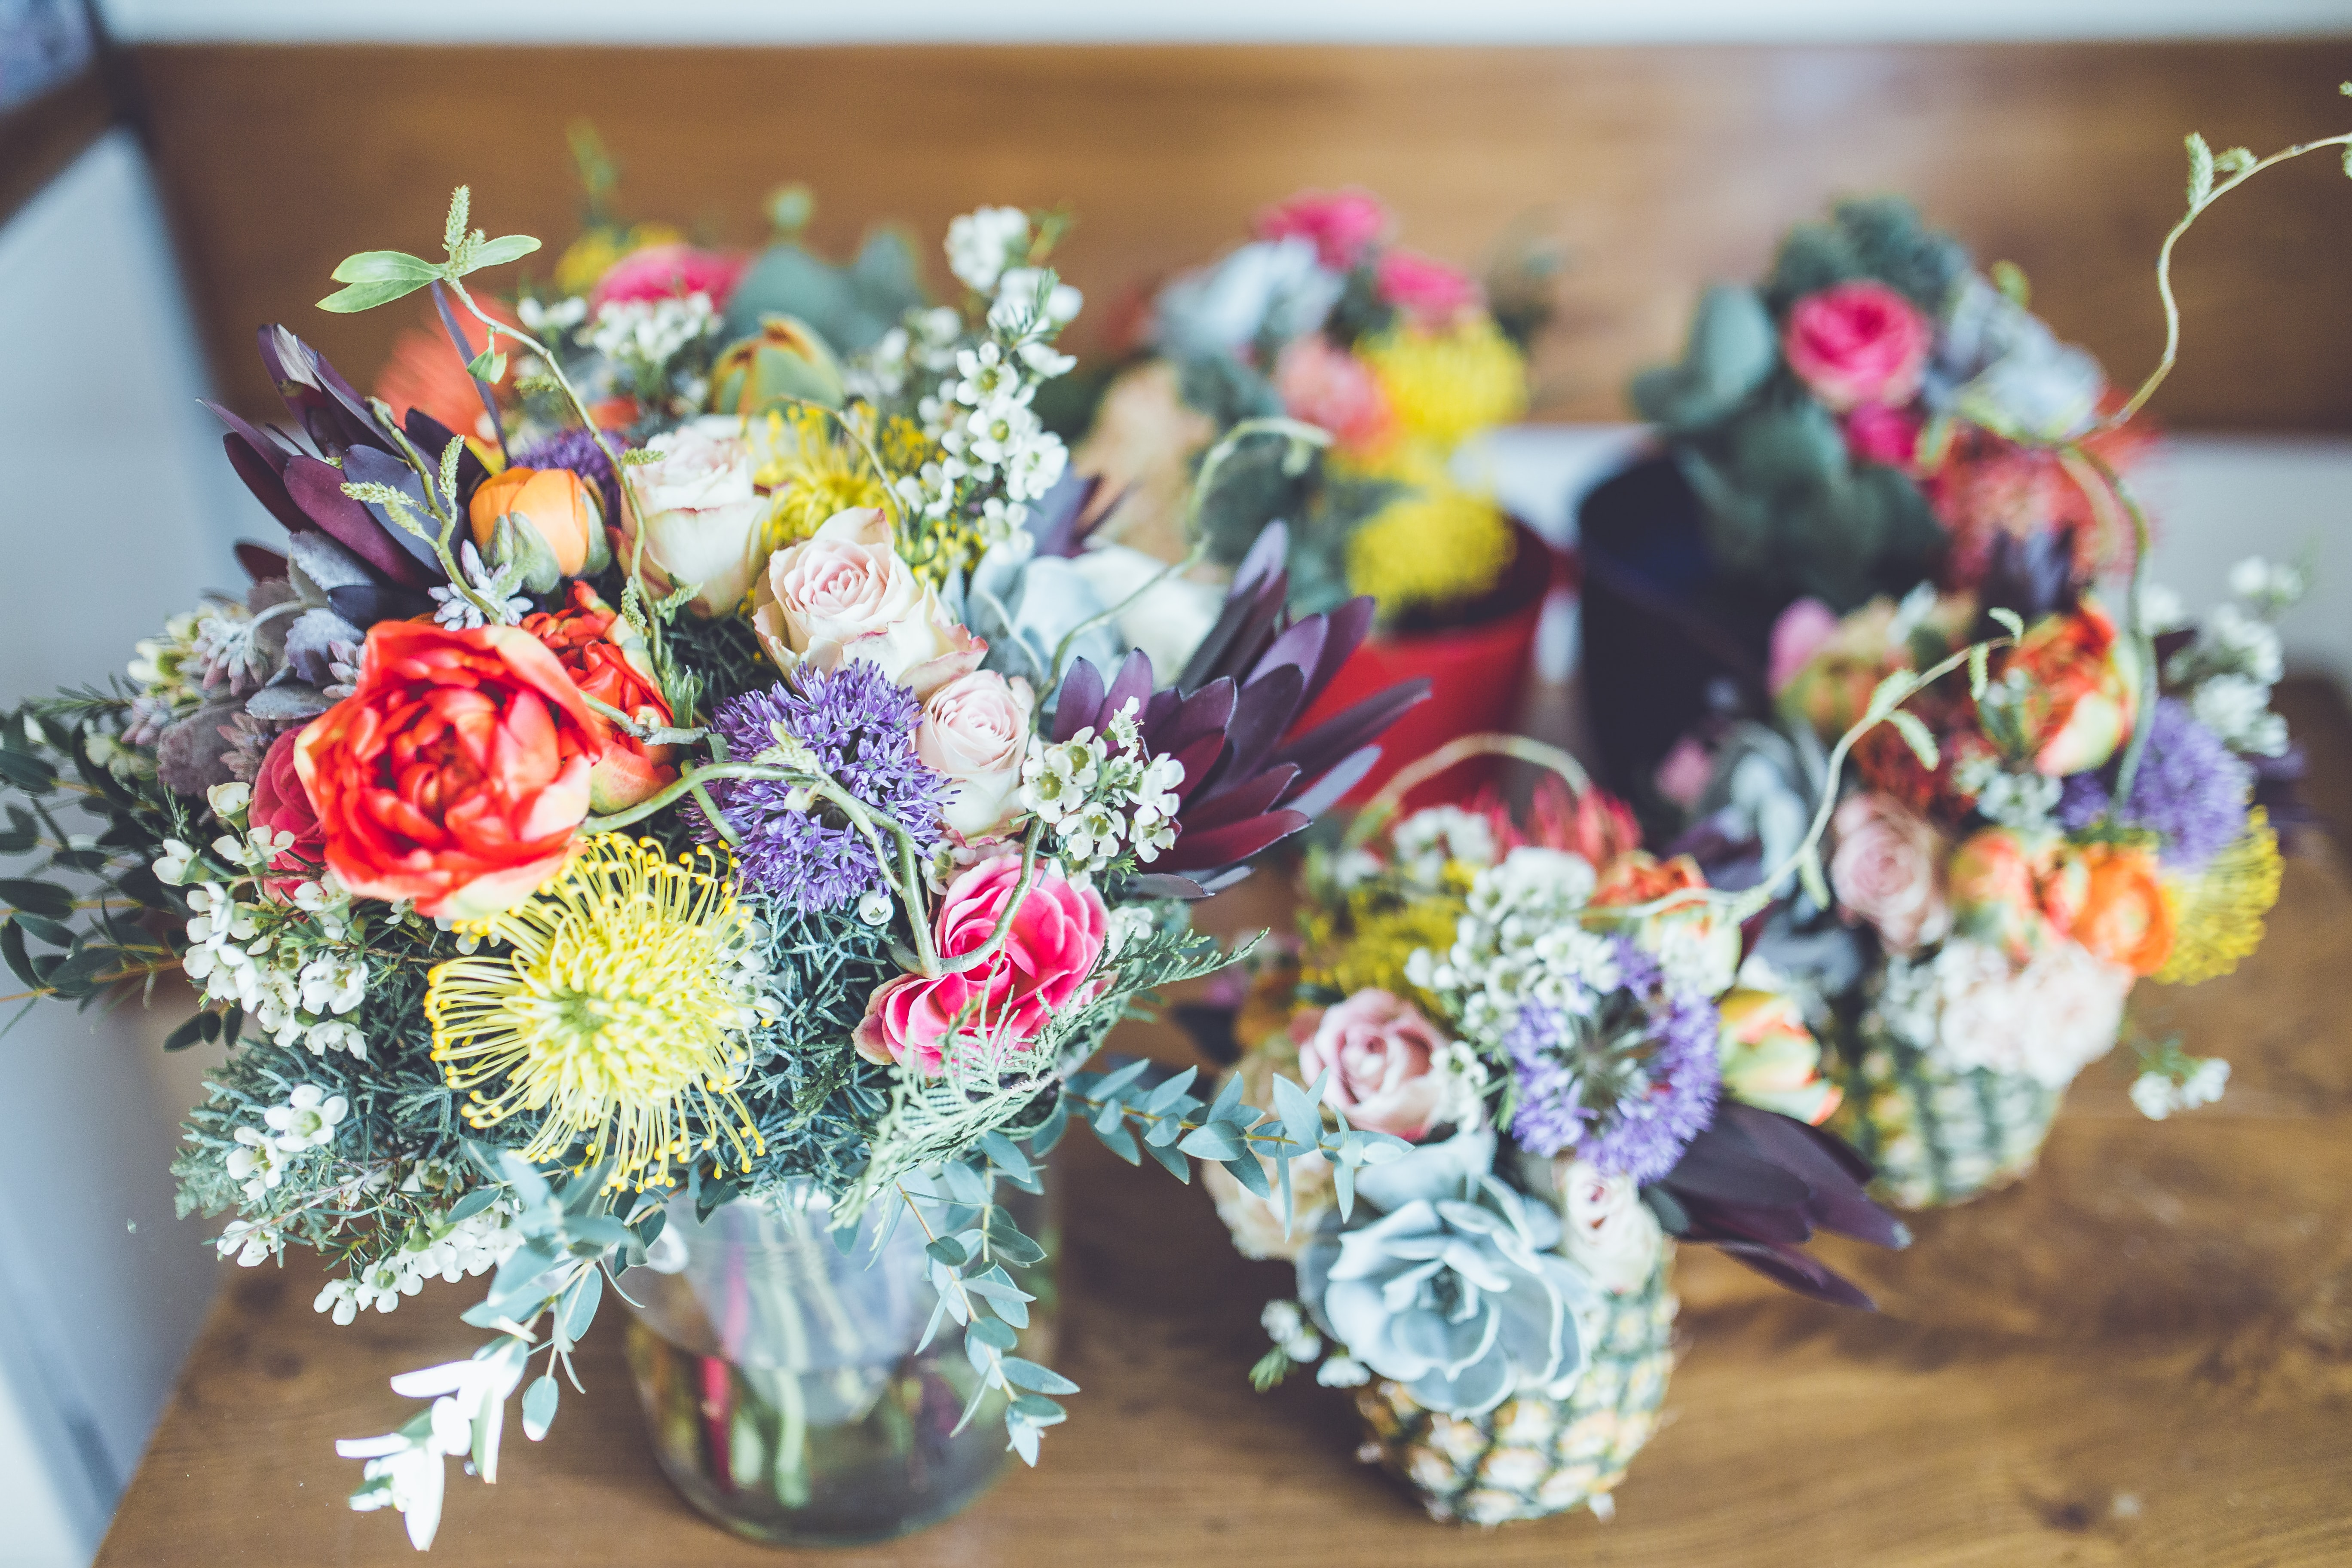 An arrangement of several floral bouquets with colorful flowers in small vases and pots